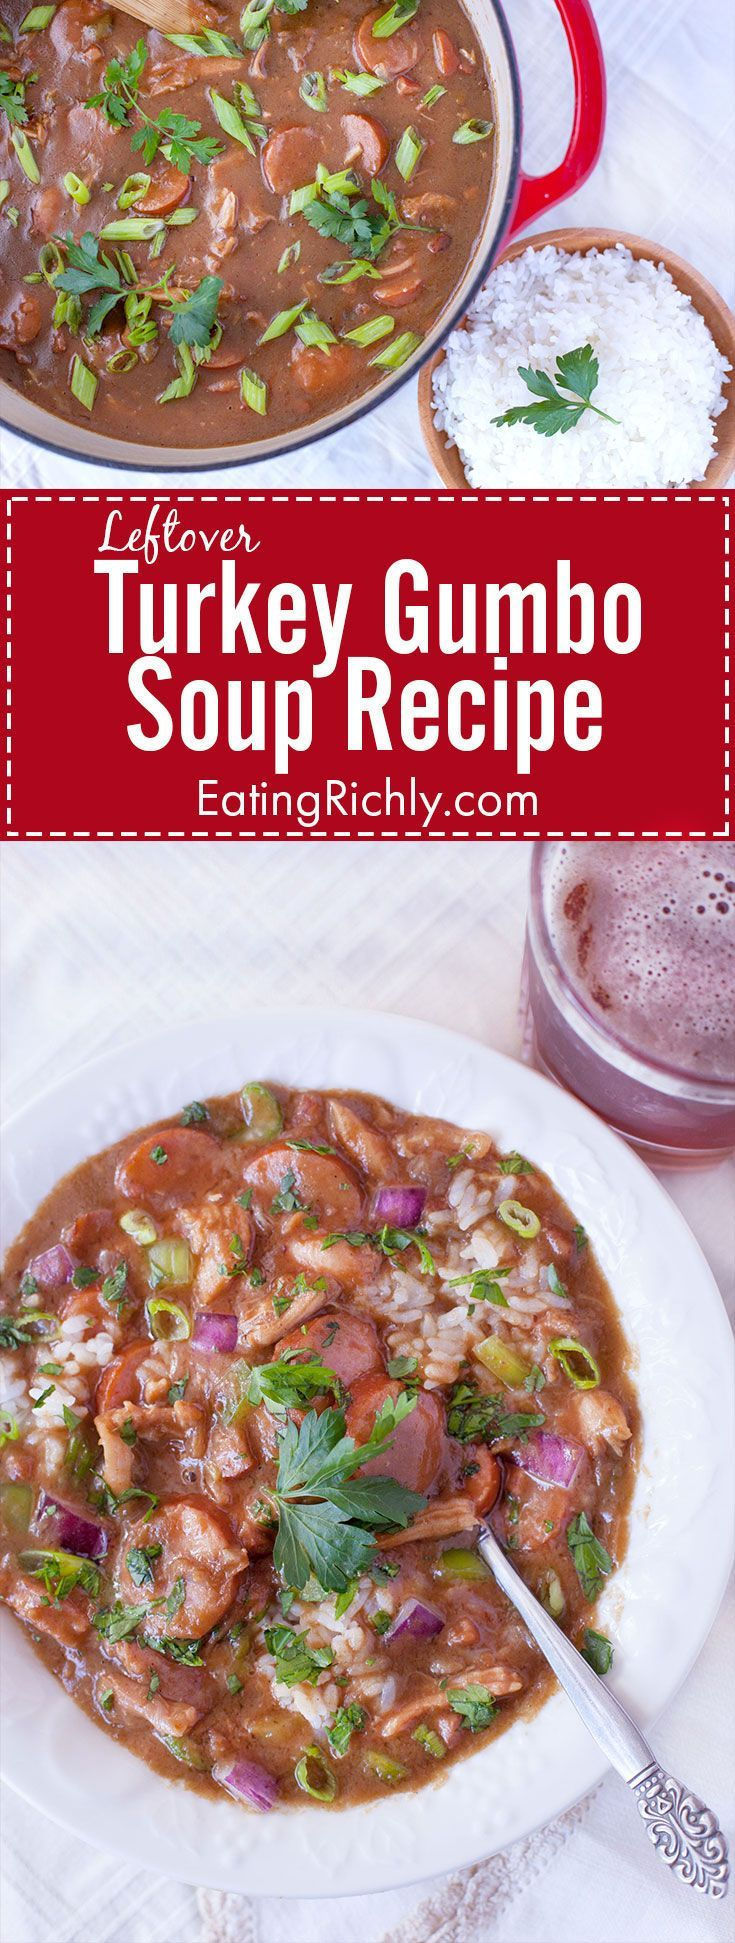 Need some good leftover turkey recipes? This turkey gumbo is a great way to use up leftover turkey during the holiday season, but you can also sub shredded chicken and chicken stock to make it any time of year. From EatingRichly.com